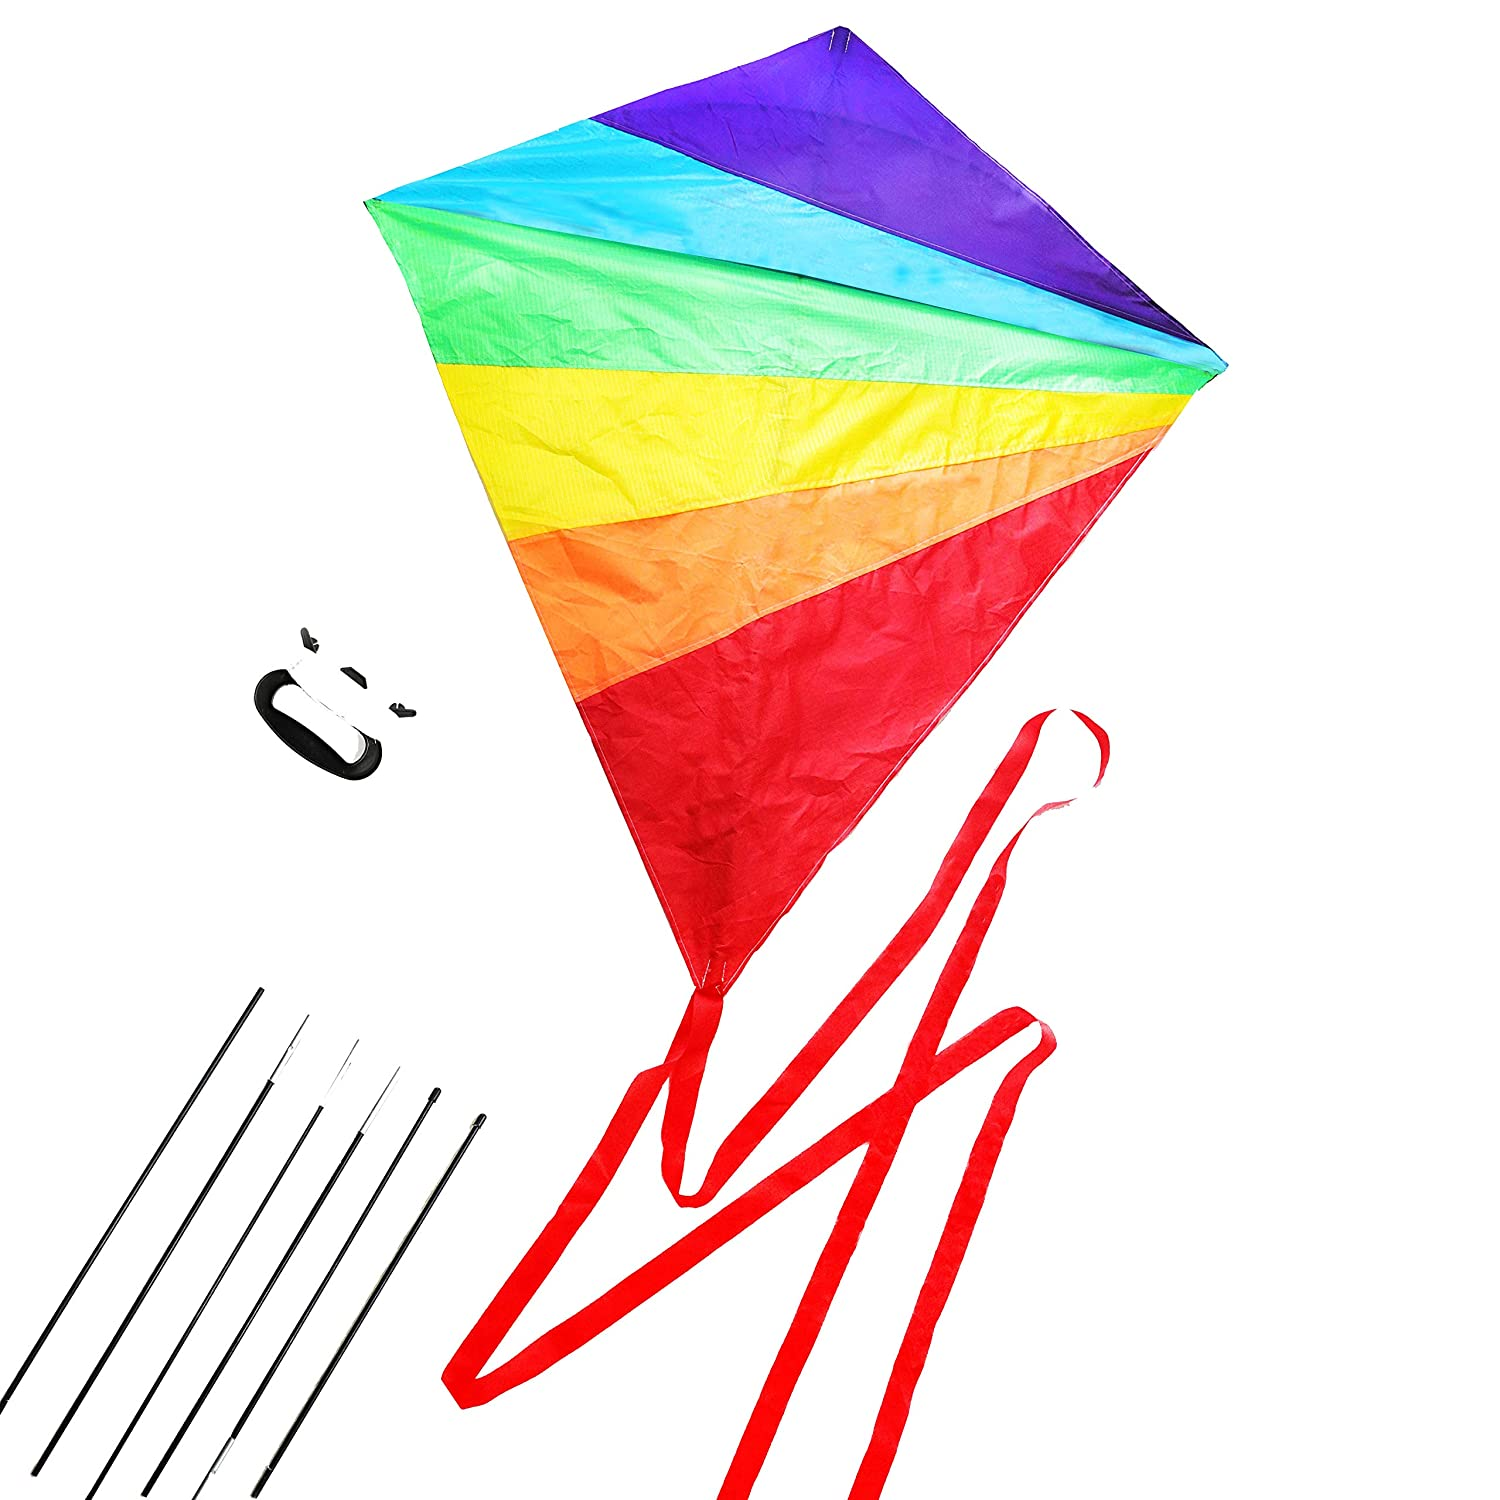 Diamond Kite Large Easy Flyer Rainbow Kites for Kids and Adults for Beach Park Garden Playground with Kite Handle Perfect Outdoor Fun B07F13T8G5